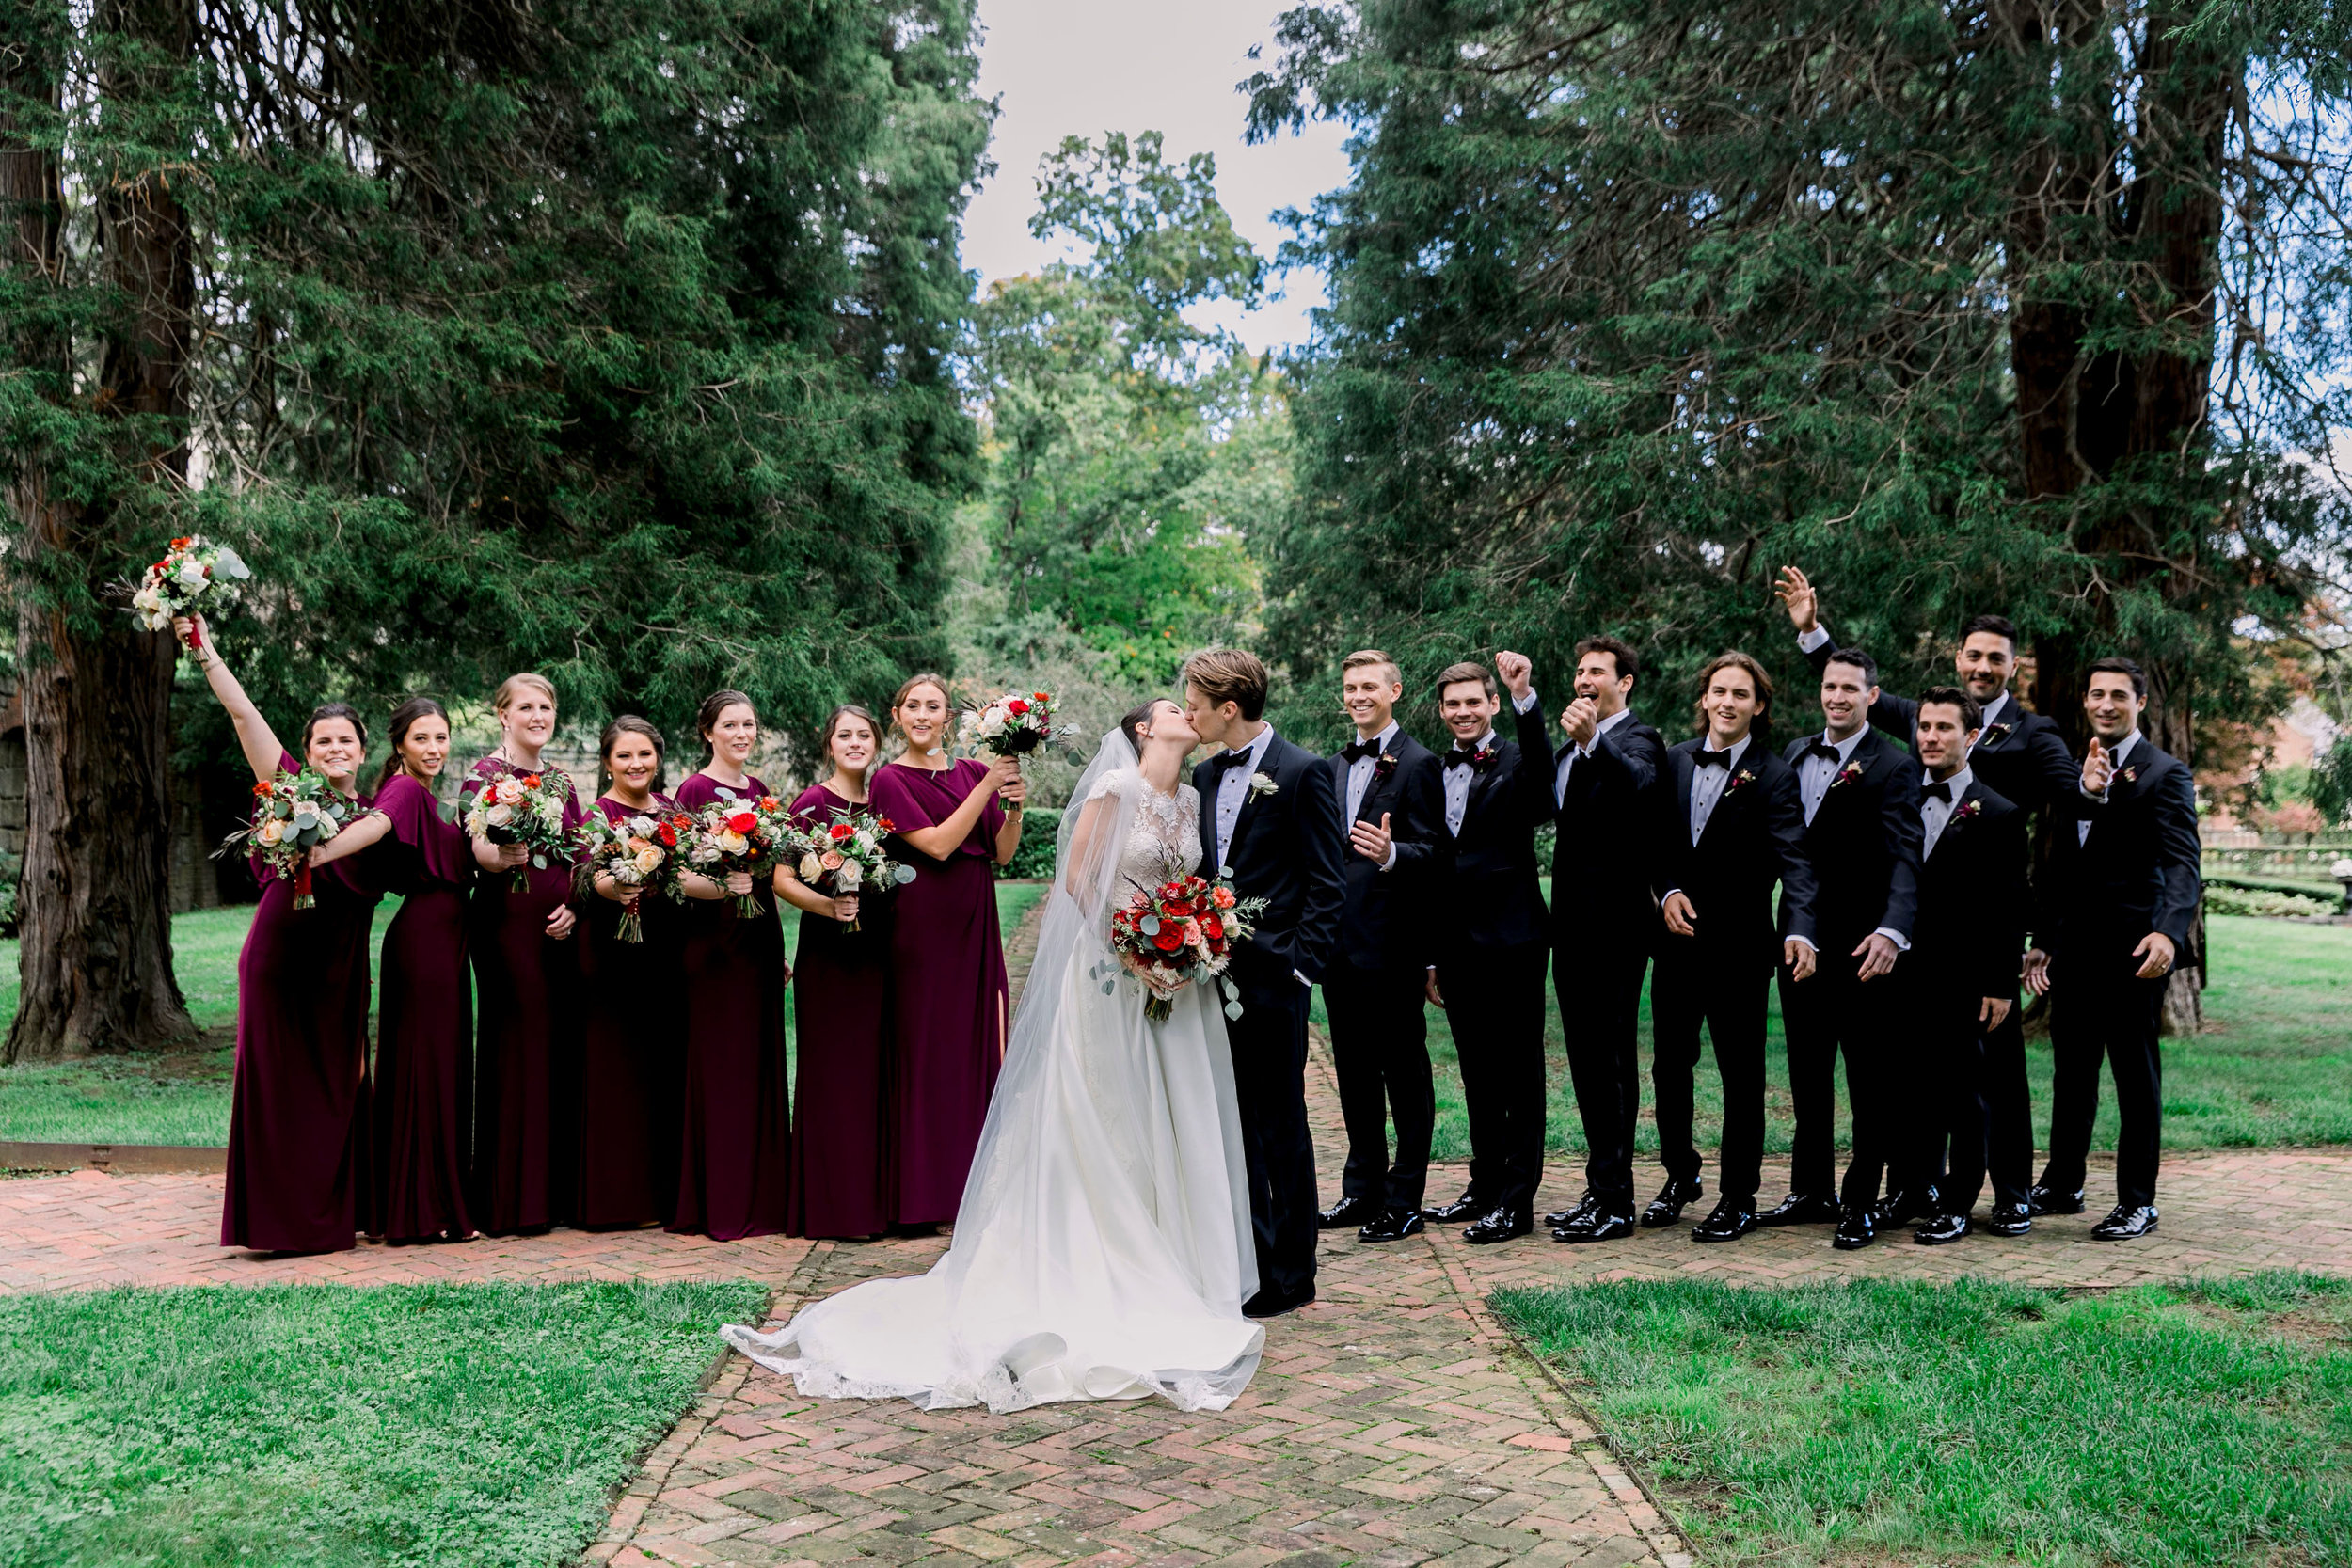 Turner-Hill-Ipwswich-Weddingphotography000471.jpg